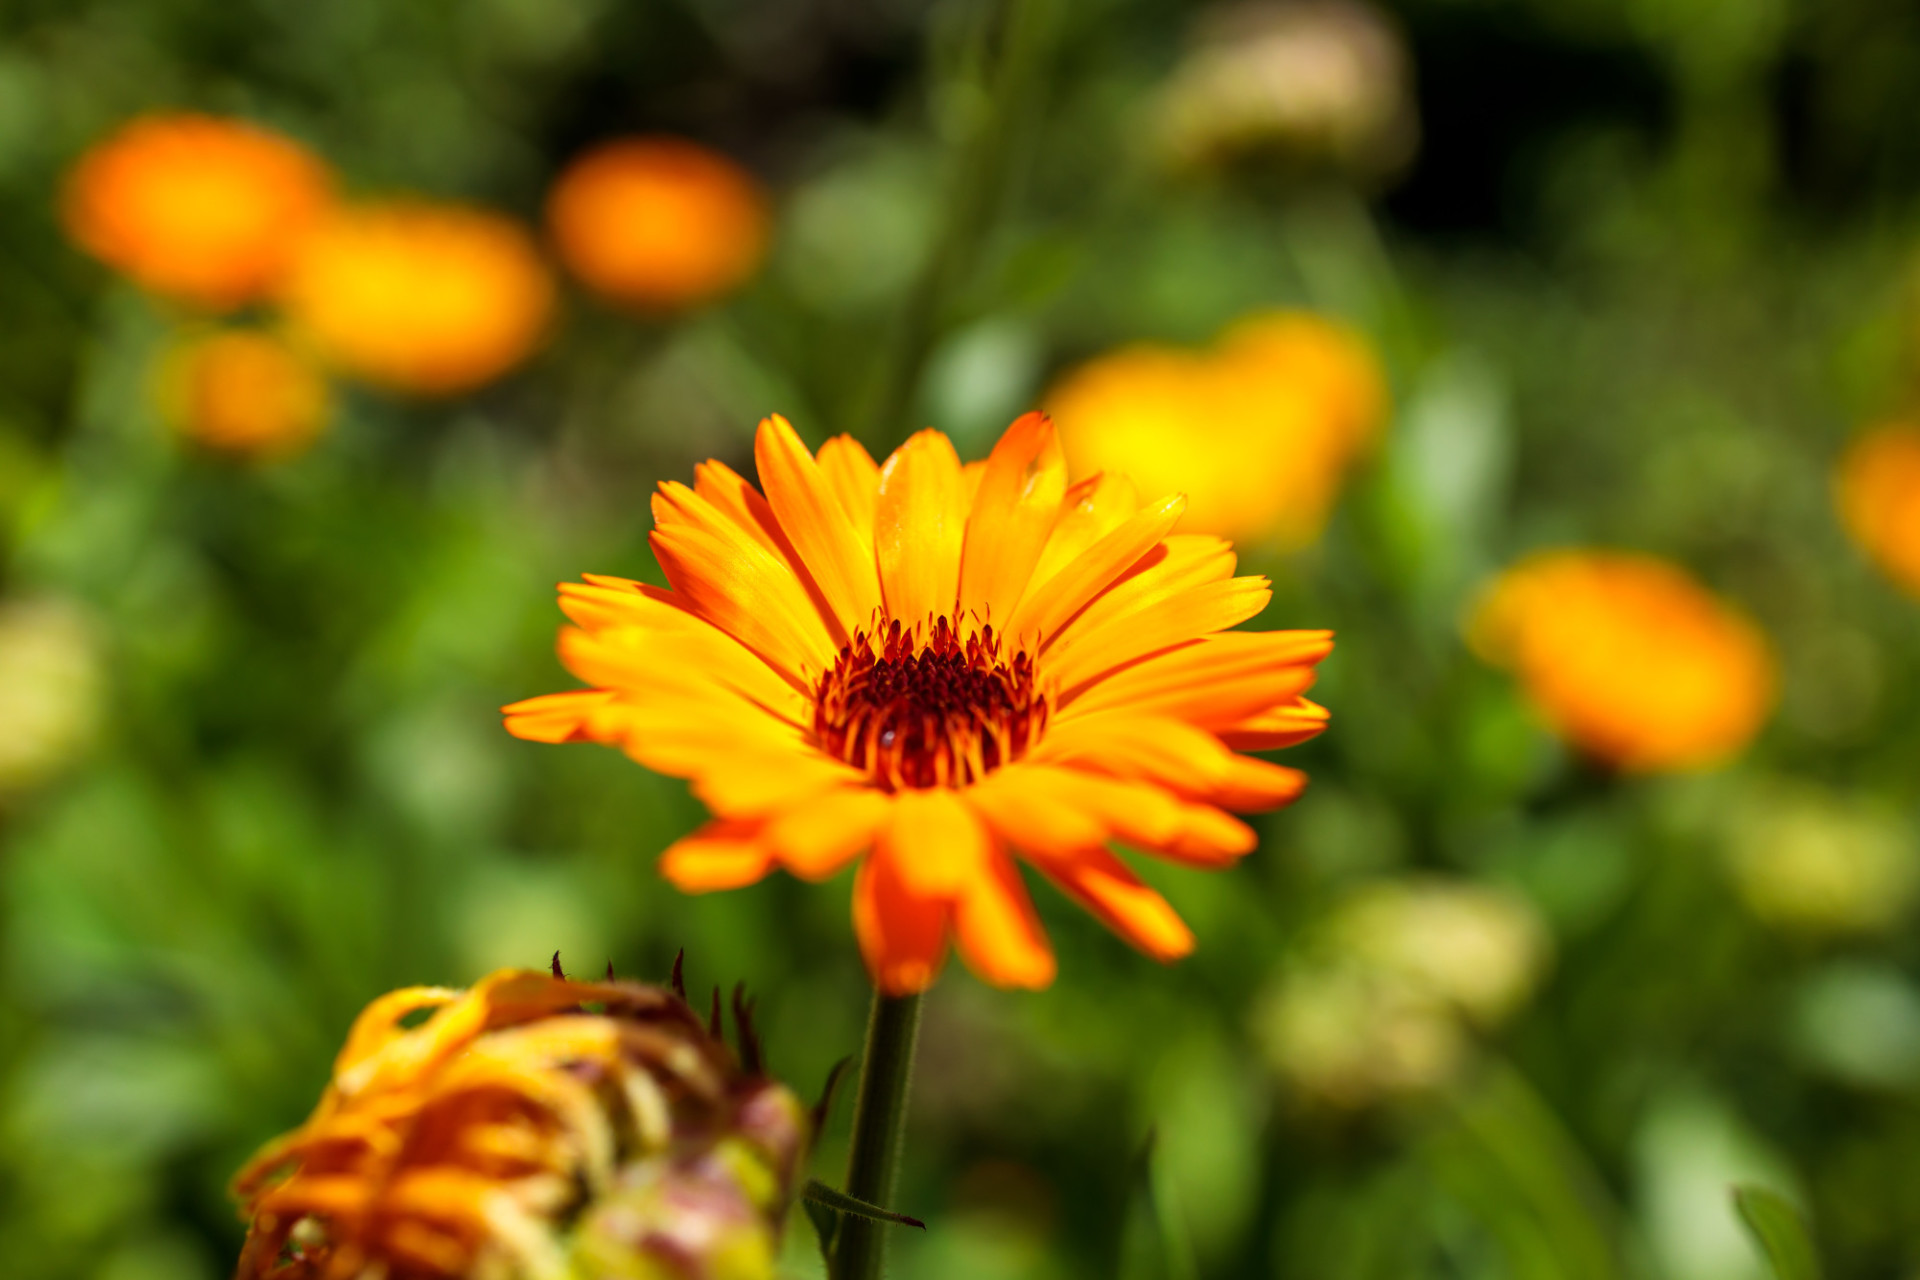 Magnificent marigold shines in the glow of light